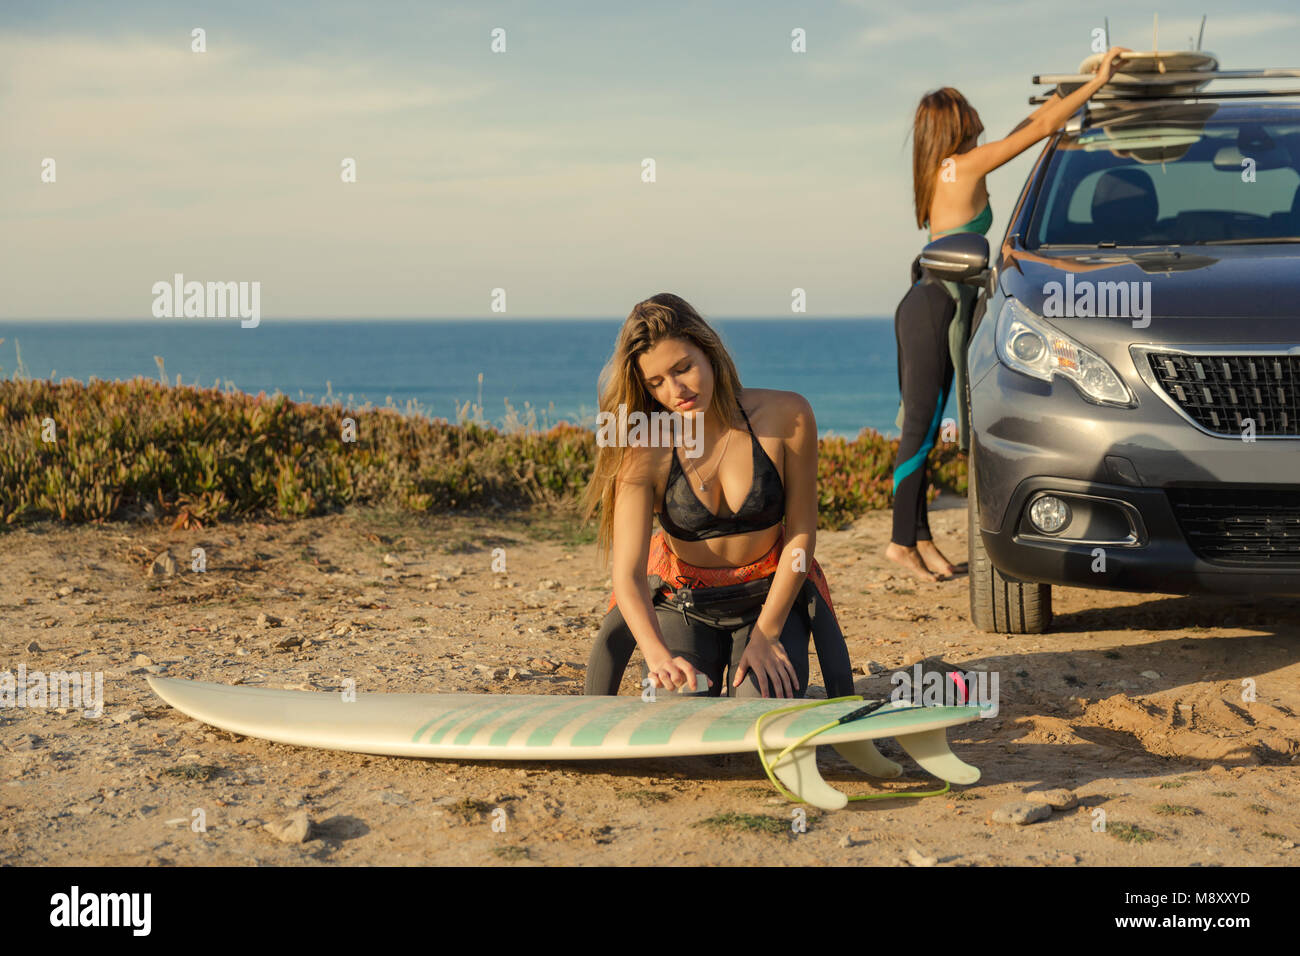 Two beautiful surfer girls near the coastline with her car, and getting ready for surfing - Stock Image